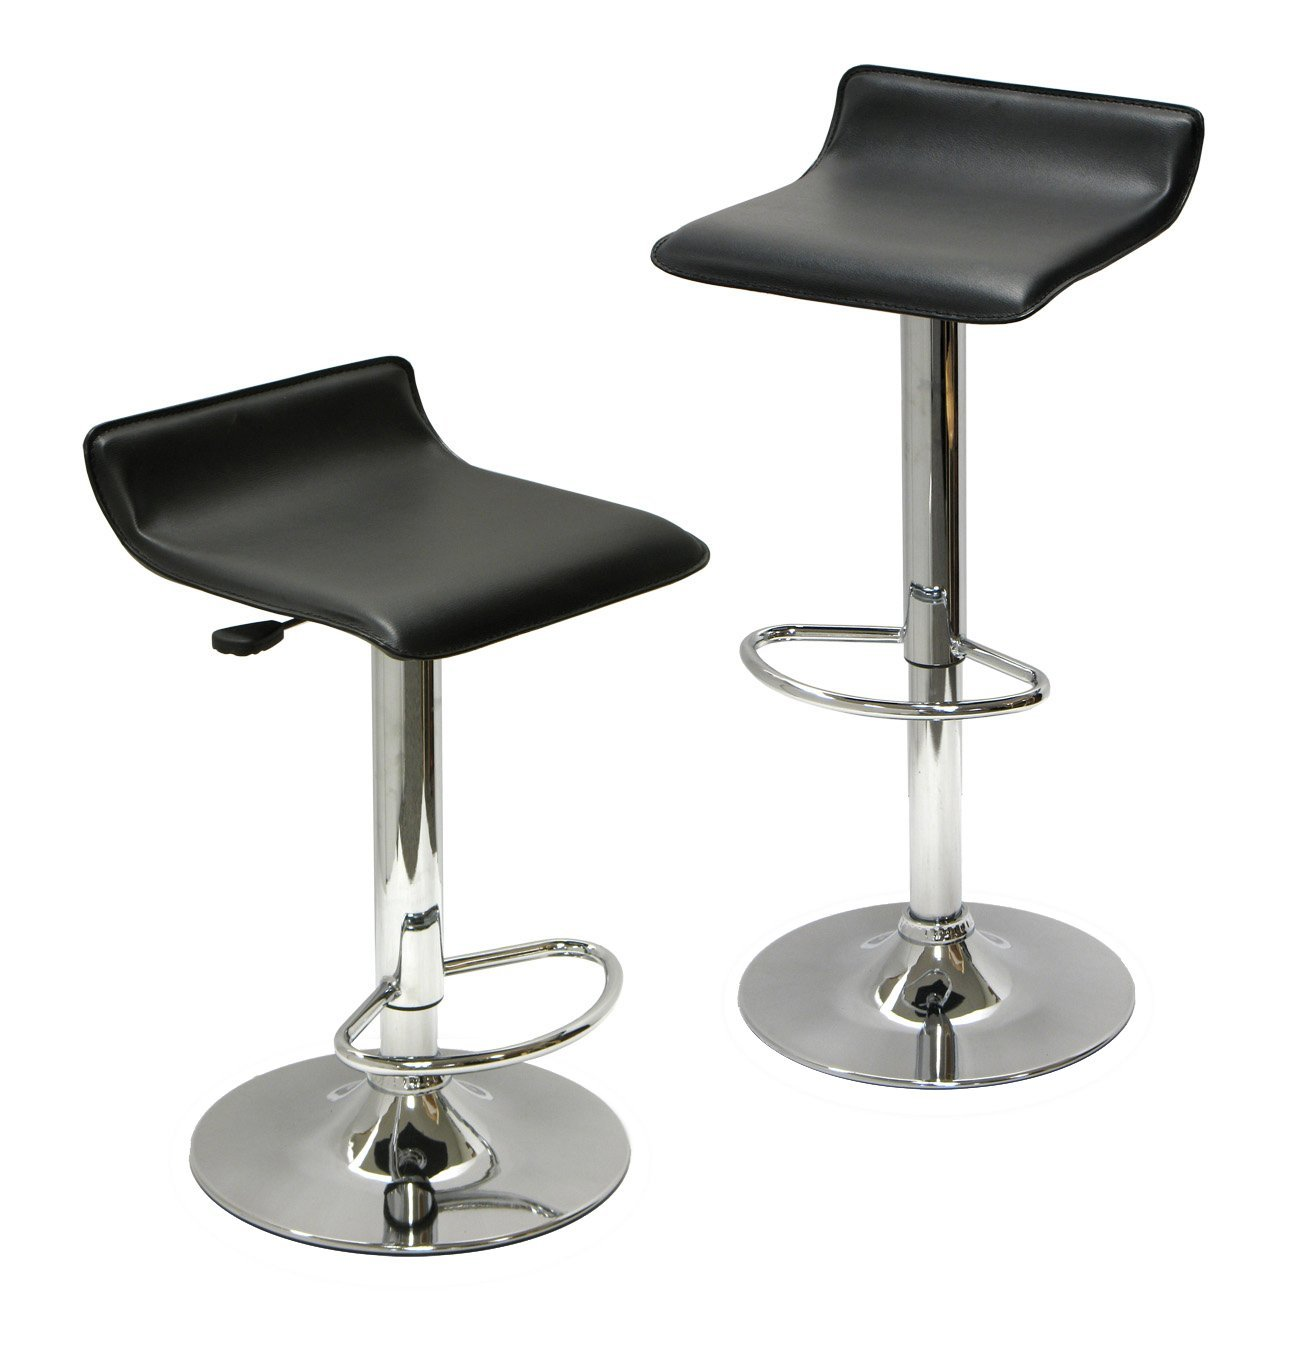 Winsome Wood Air Lift Adjustable Stools (View 4 of 10)